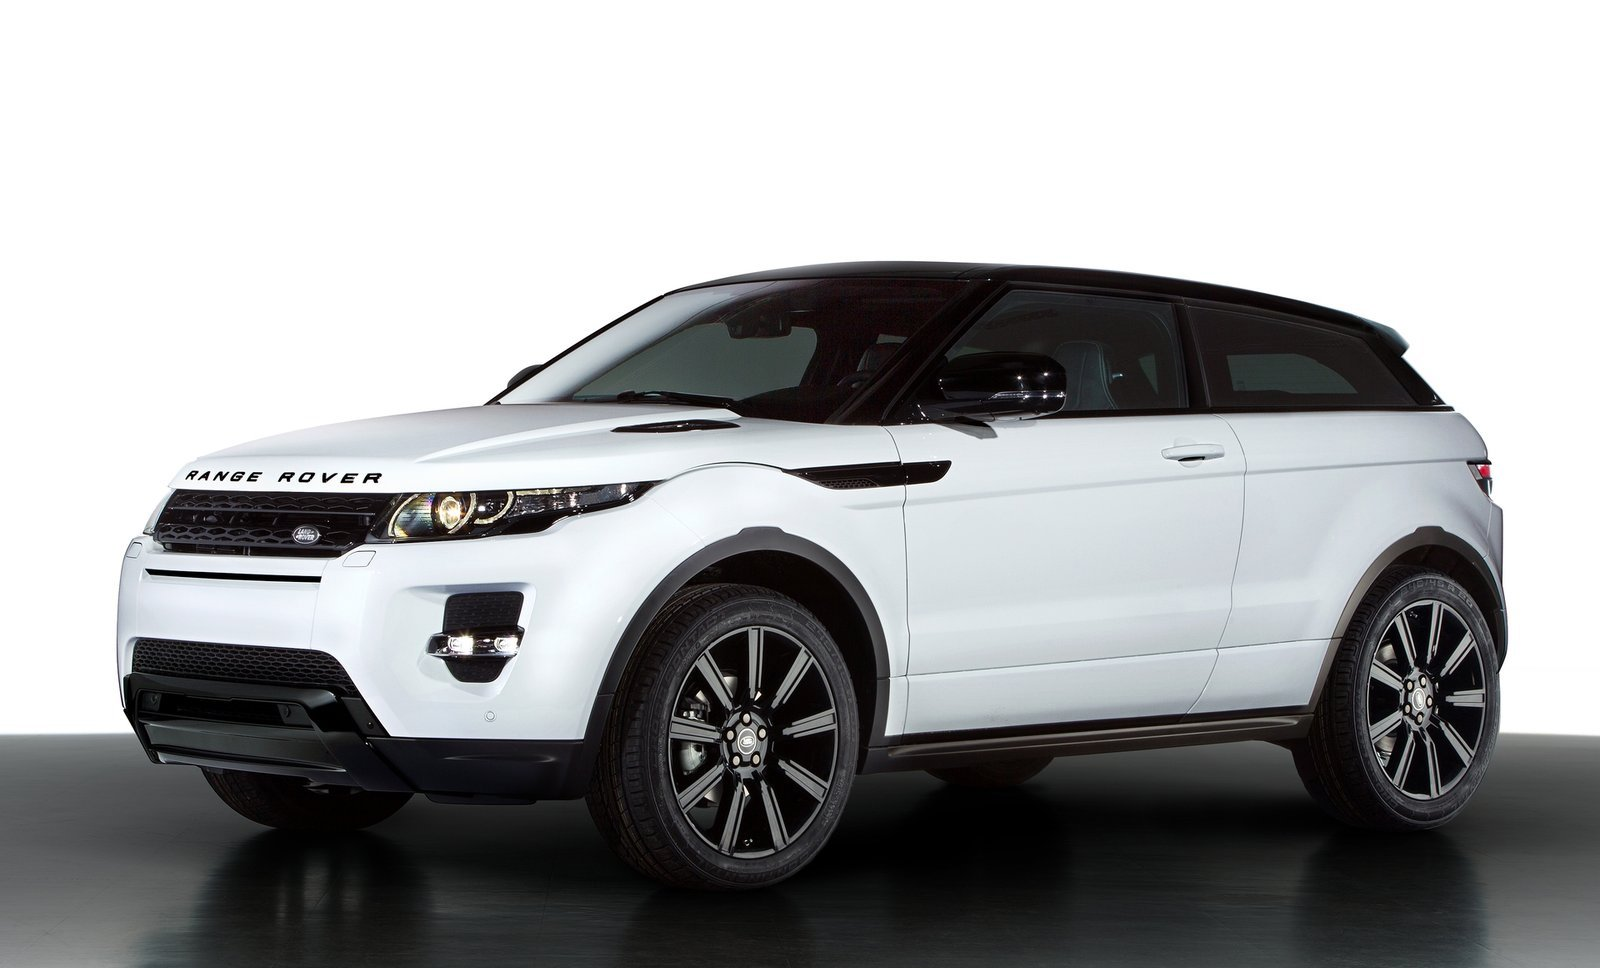 Land rover Range rover Evoque black design